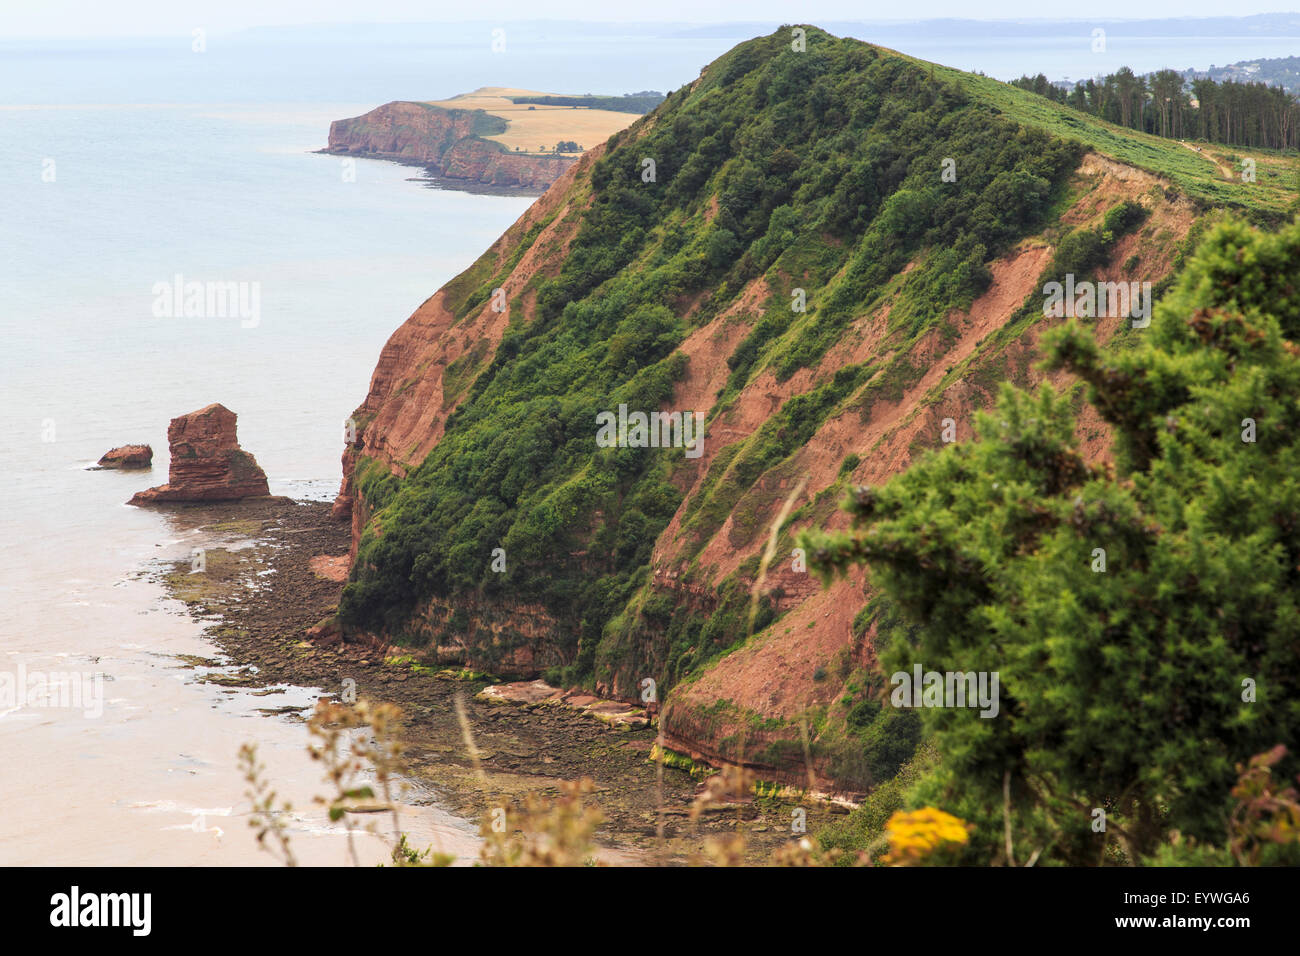 Hern Point Rock from High Peak, on the South West Coast Path, just above Sidmouth and looking towards Ladram Bay. Stock Photo